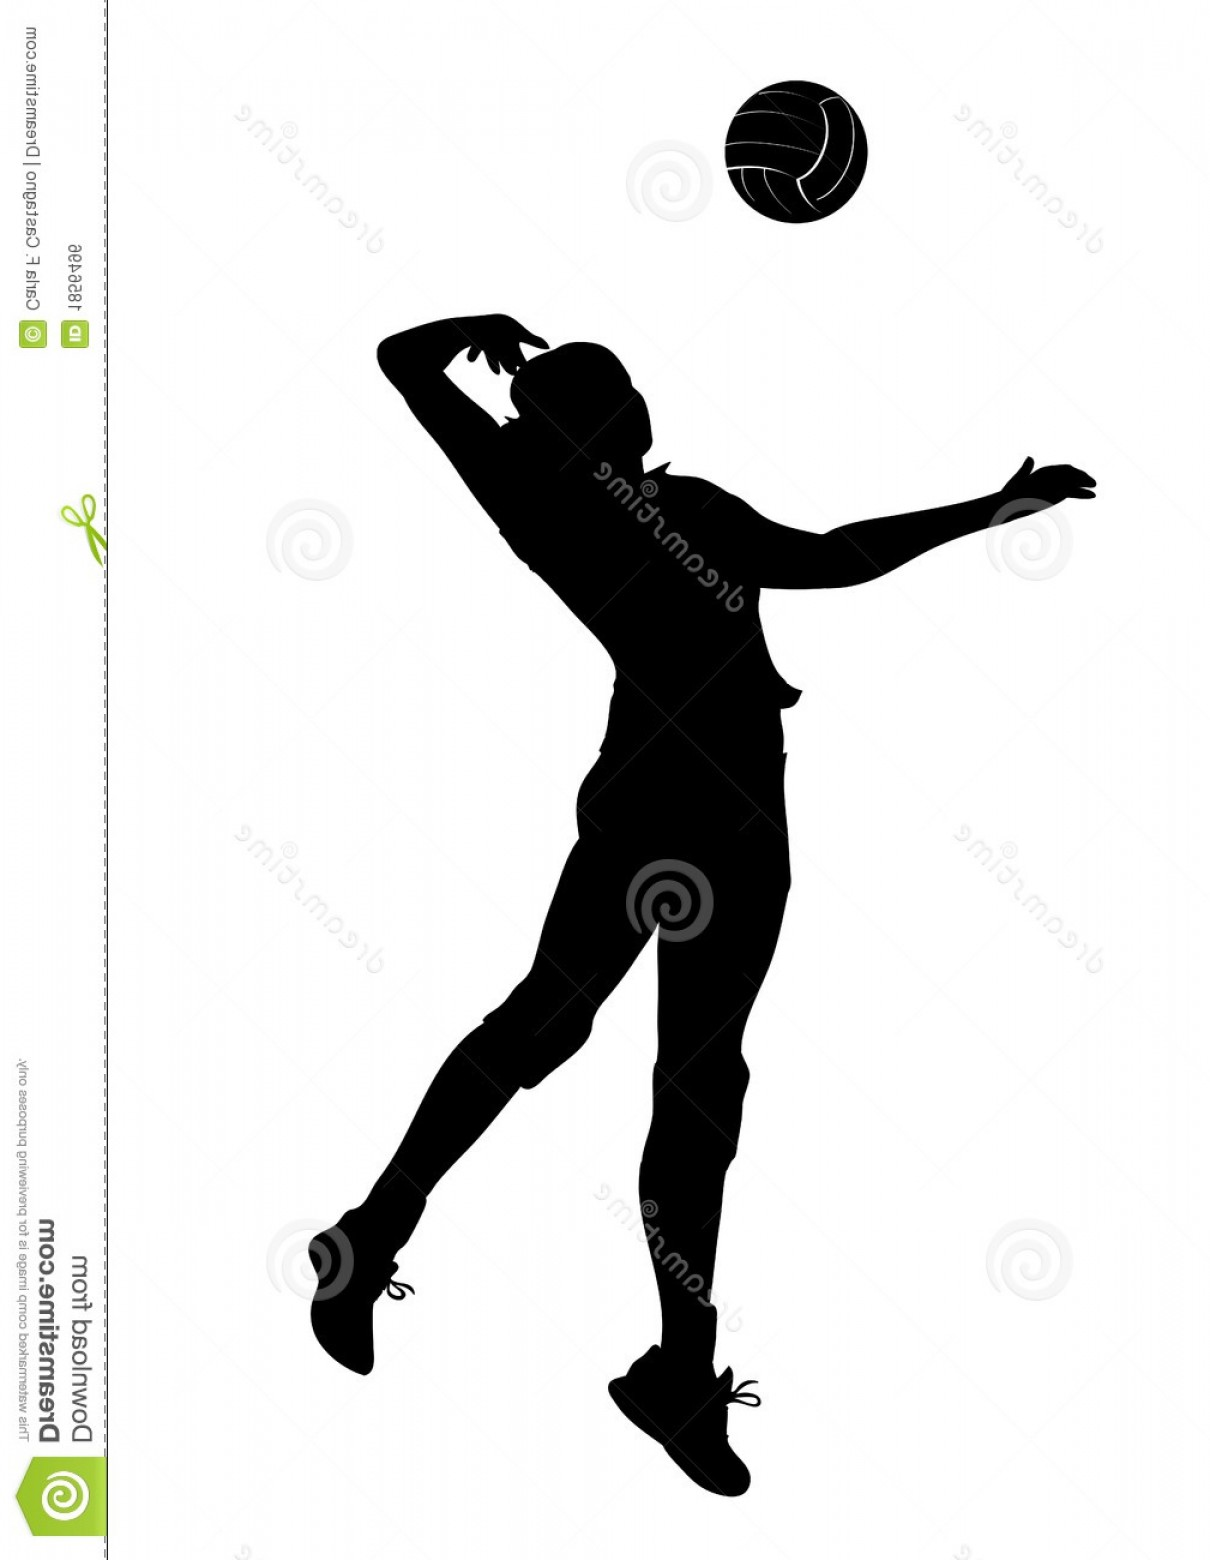 Volleyball Player Vector: Royalty Free Stock Image Volley Player Silhouette Woman Image